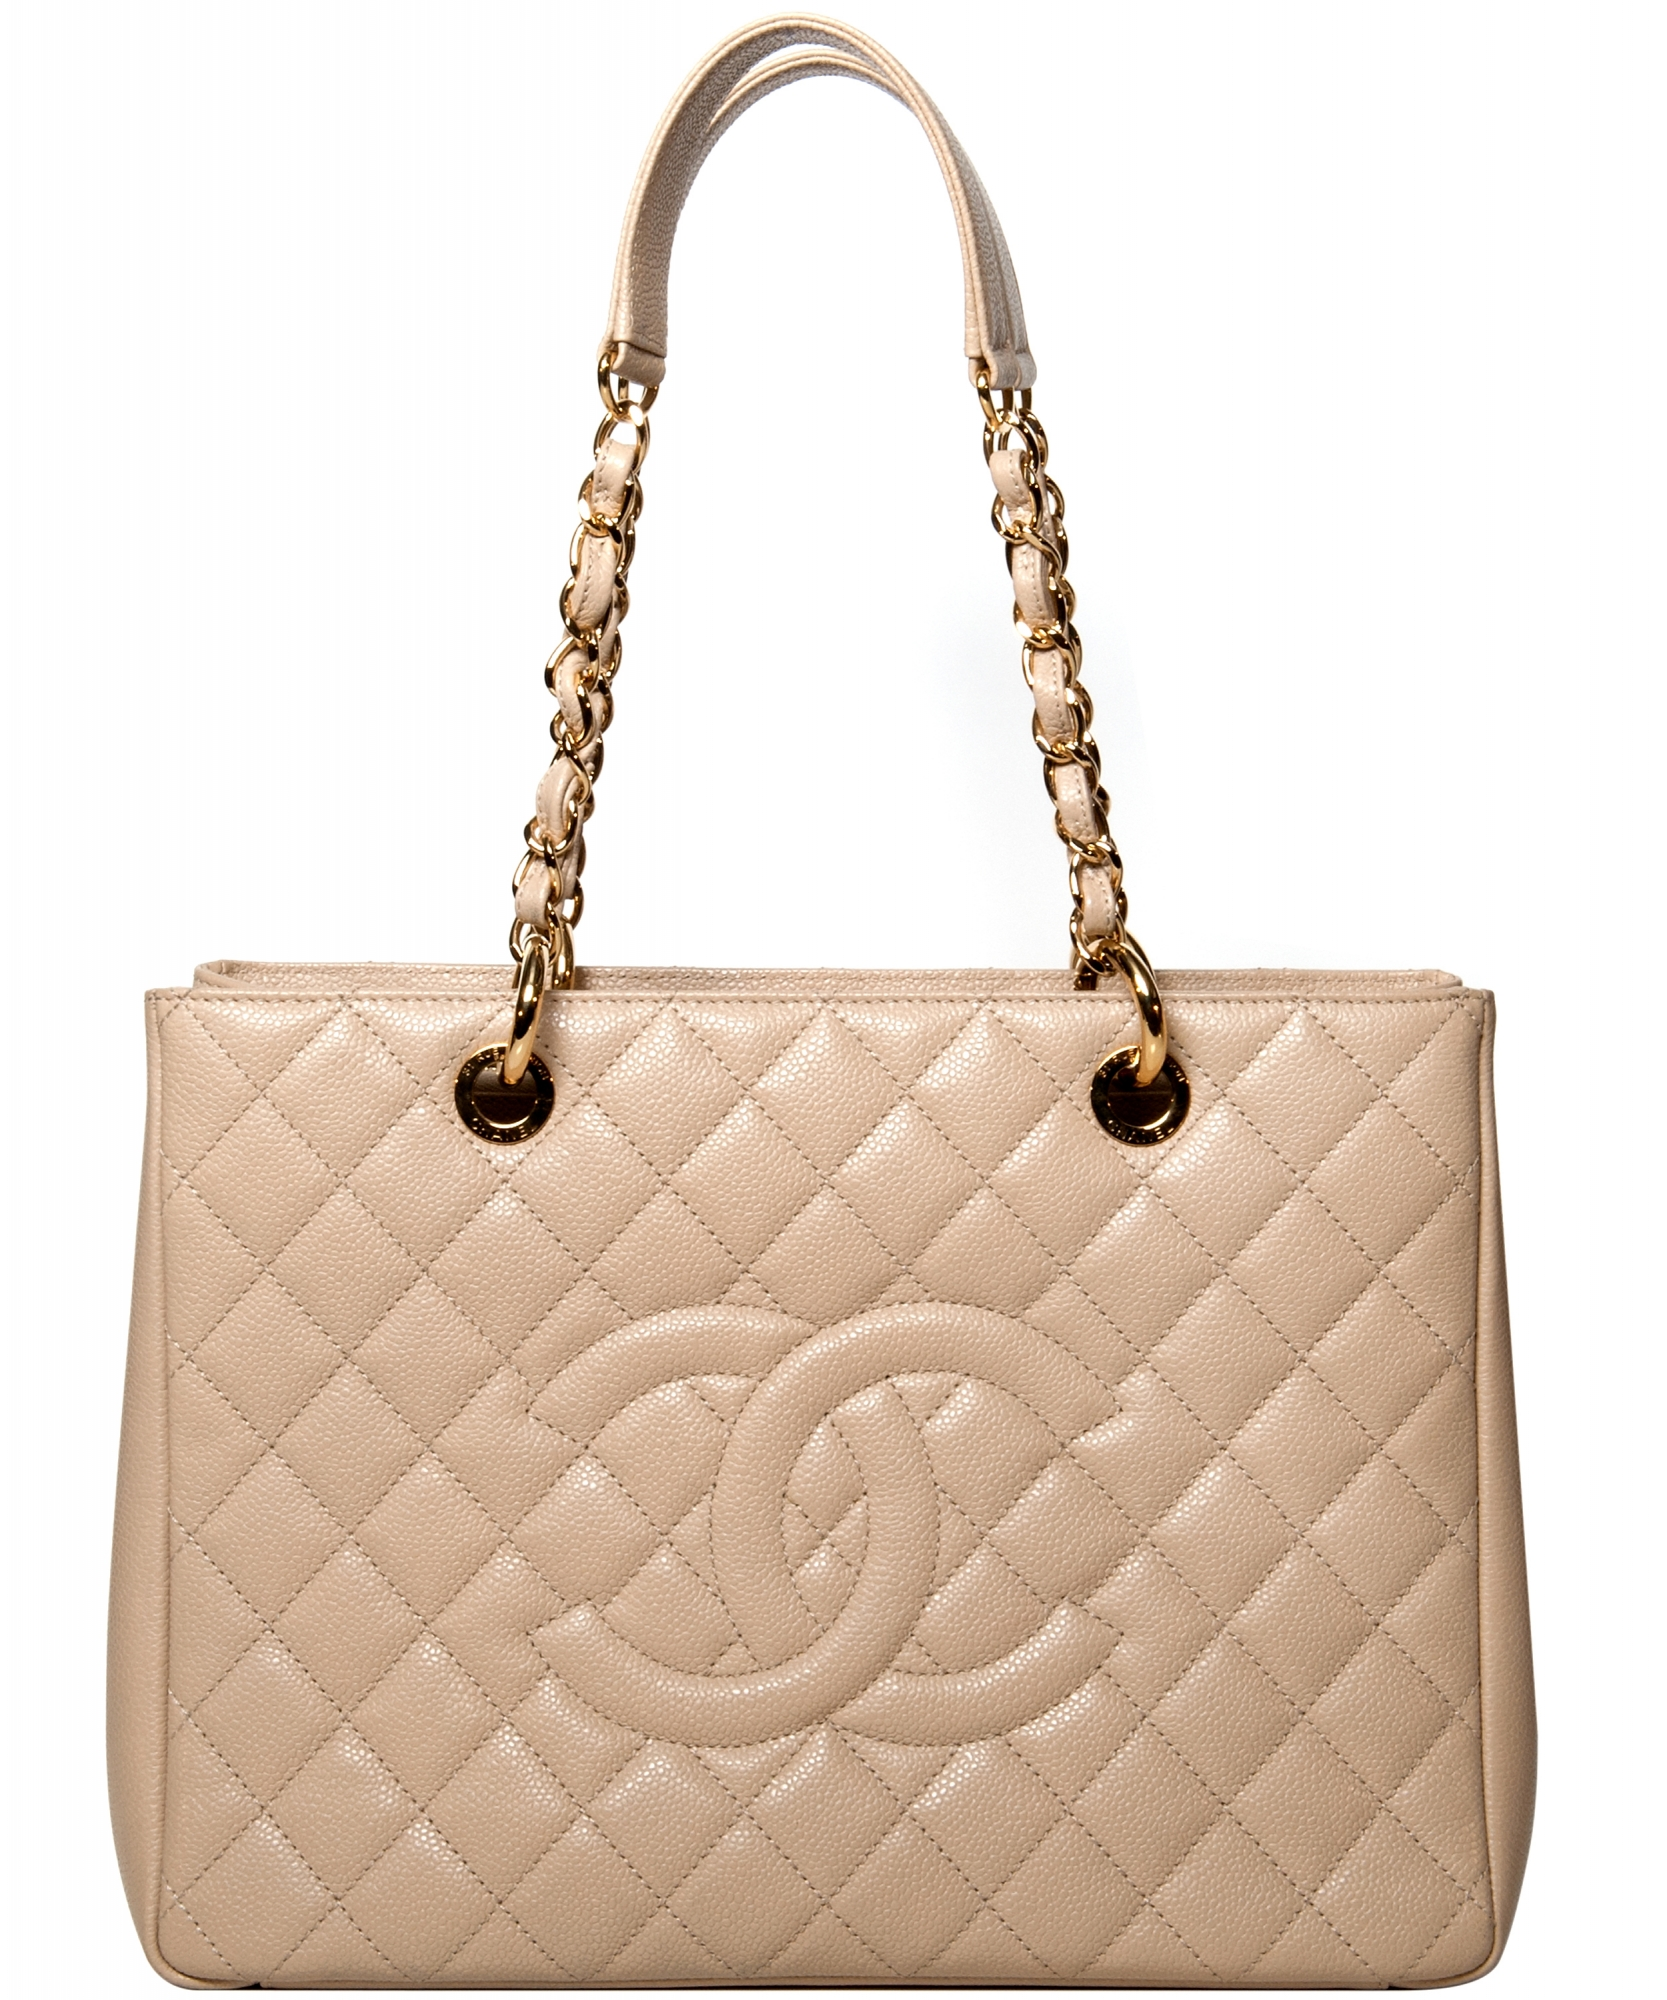 446930e3579 Chanel Beige Leather GST Grand Shopping Tote | La Doyenne